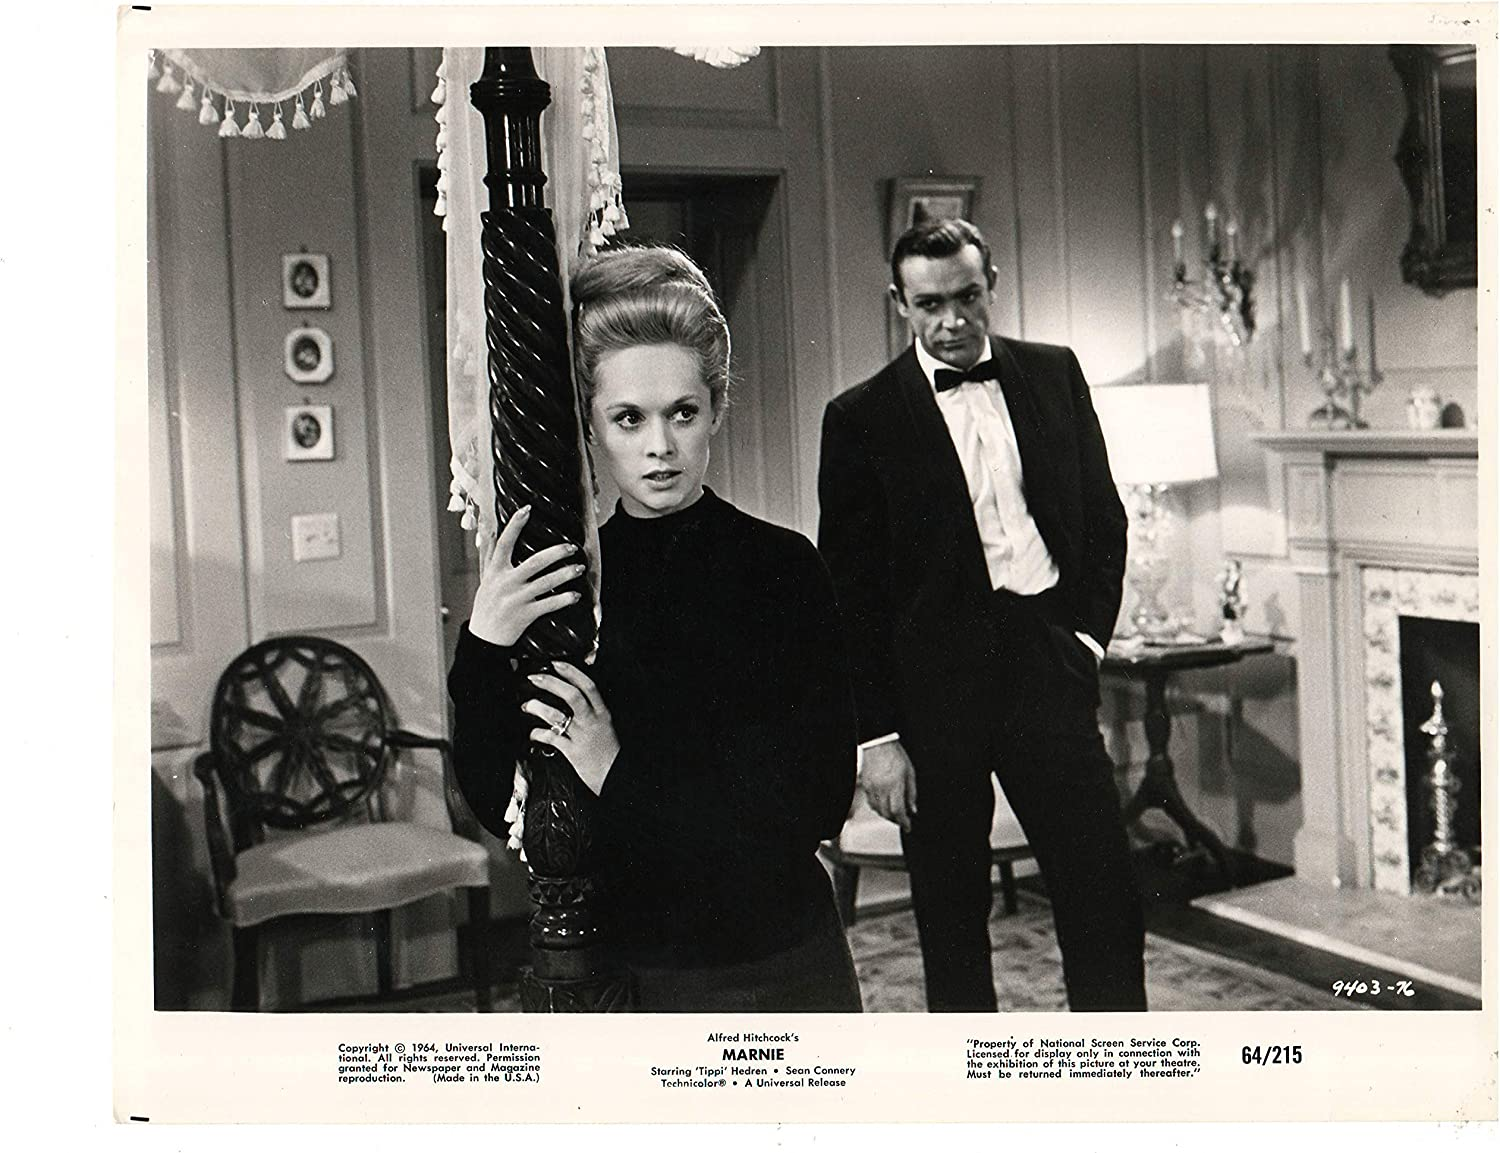 "MARNIE (1964-Alfred Hitchcock) Tippi Hedren, Sean Connery; An original  Universal studios press photograph from the now-classic Alfred Hitchcock  film. The photograph is in excellent condition. Photograph measures 8"" x  10"". V563 at"